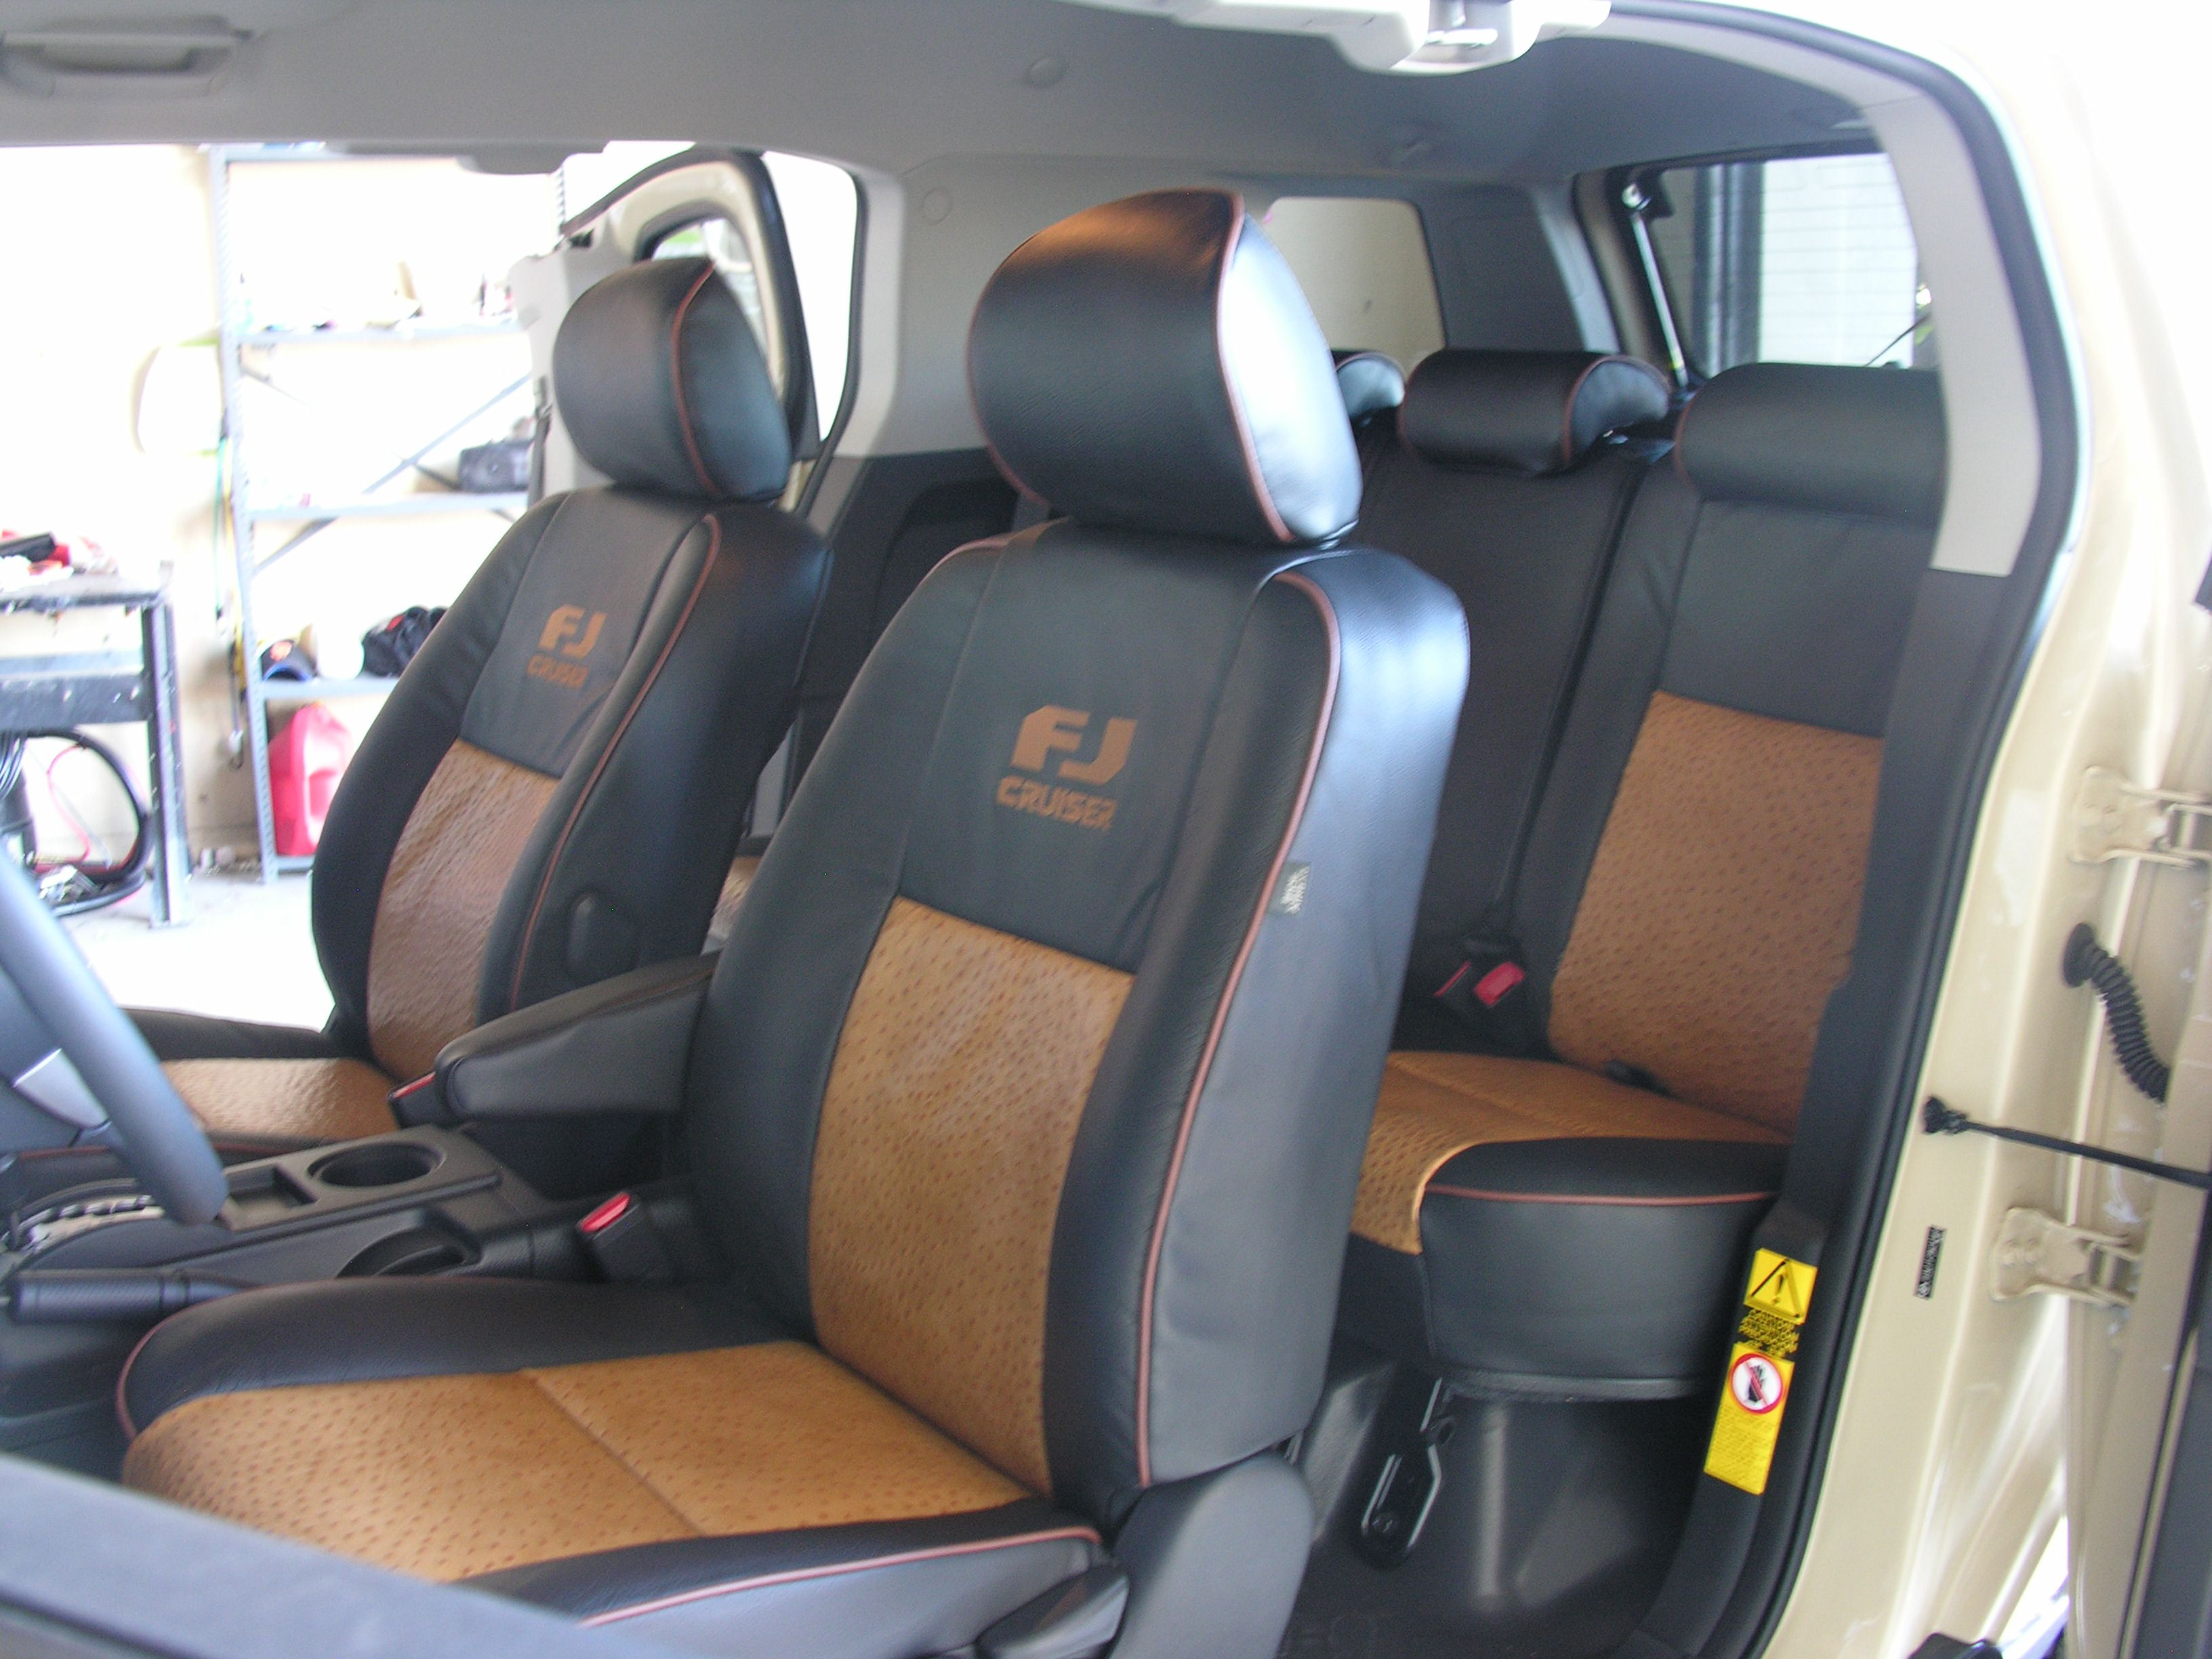 Ostrich Skin Interior In An Fj Cruiser By Accessories Unlimited Albuquerque My Style